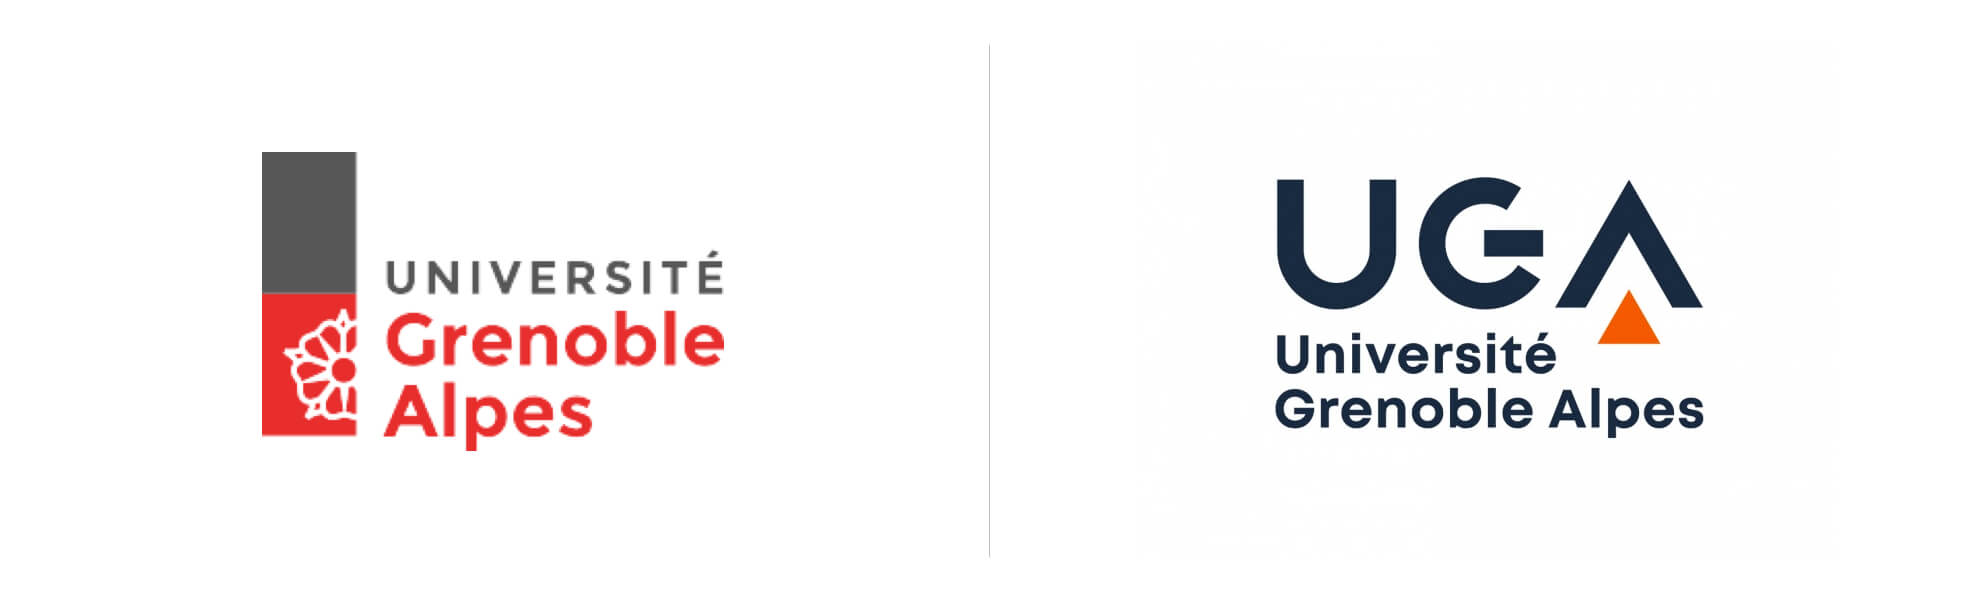 Université Grenoble Alpes ma nowe logo